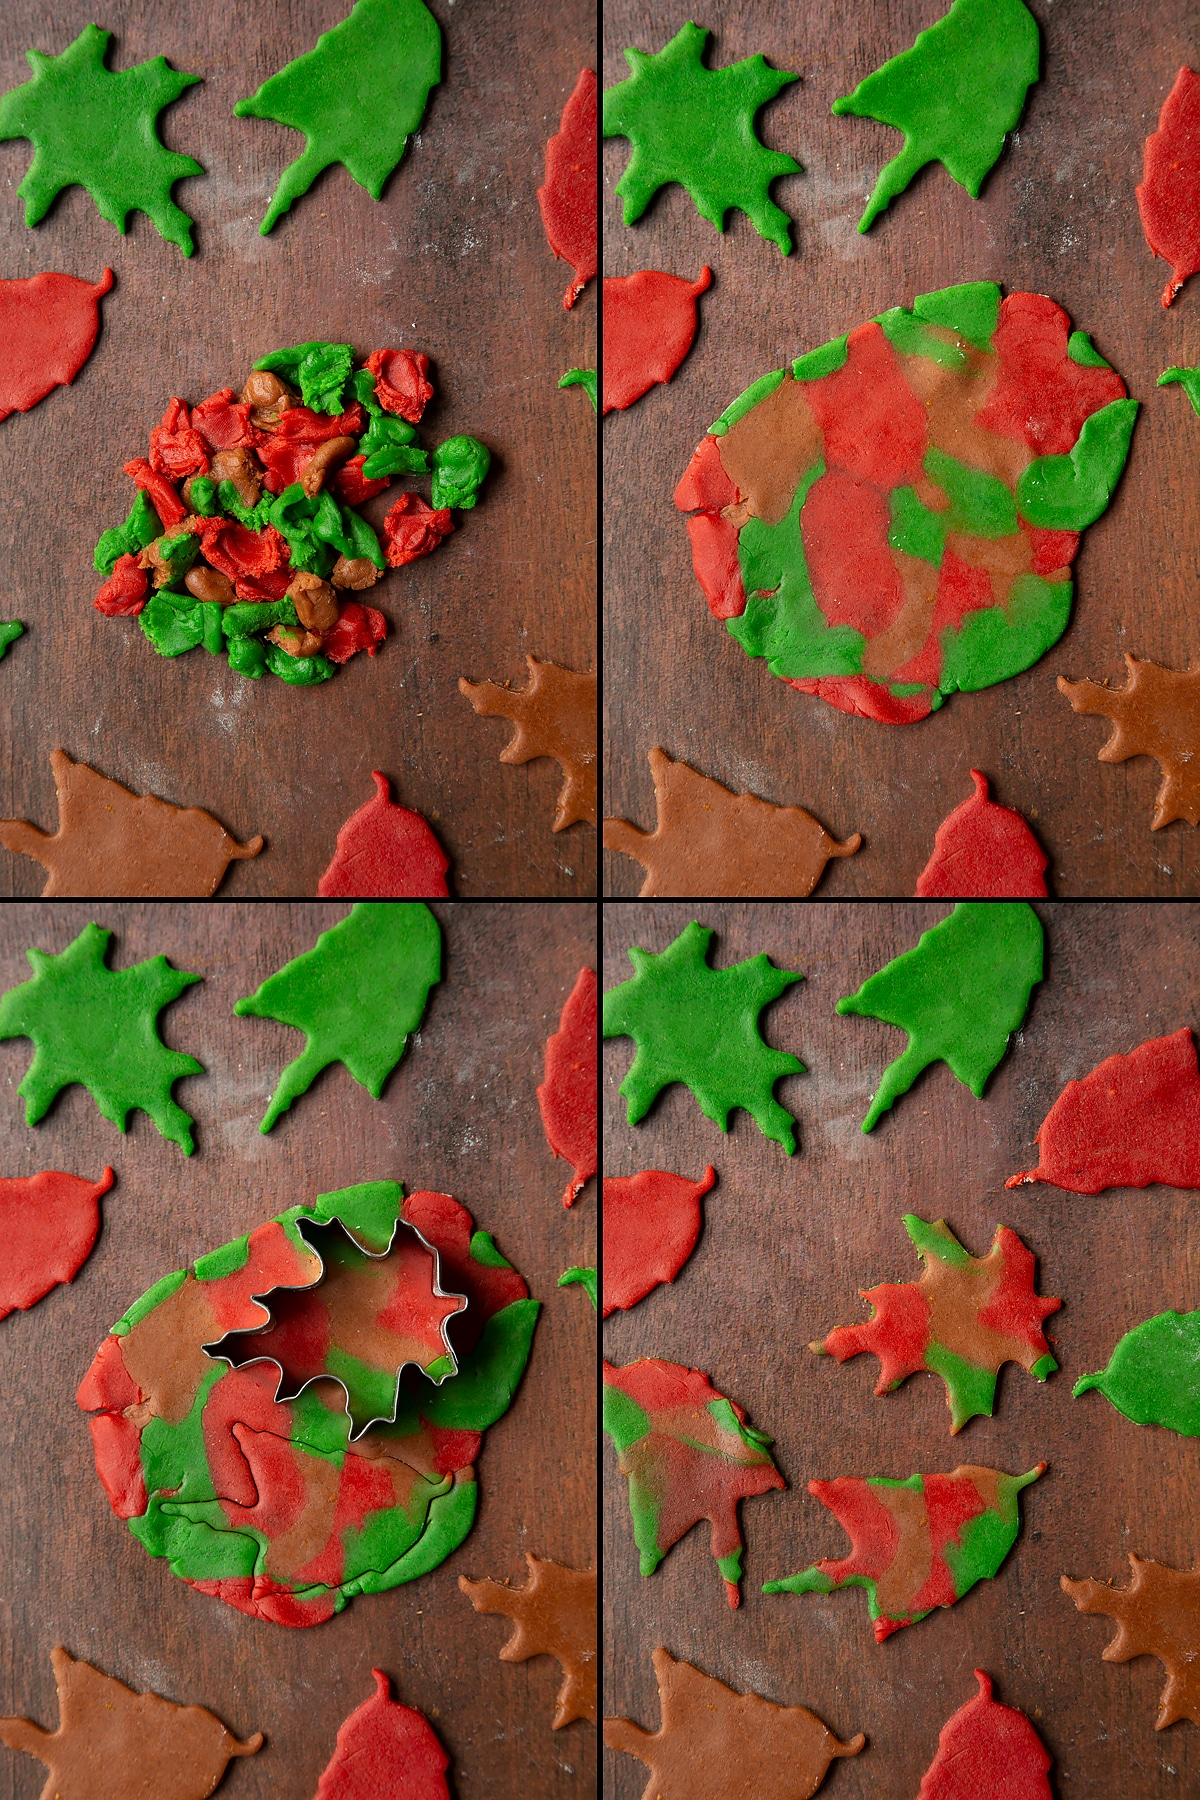 A collage of 4 images showing bits of red, green and brown cookie dough, gathered together, rolled out and cut into multicoloured leaf bicsuits.